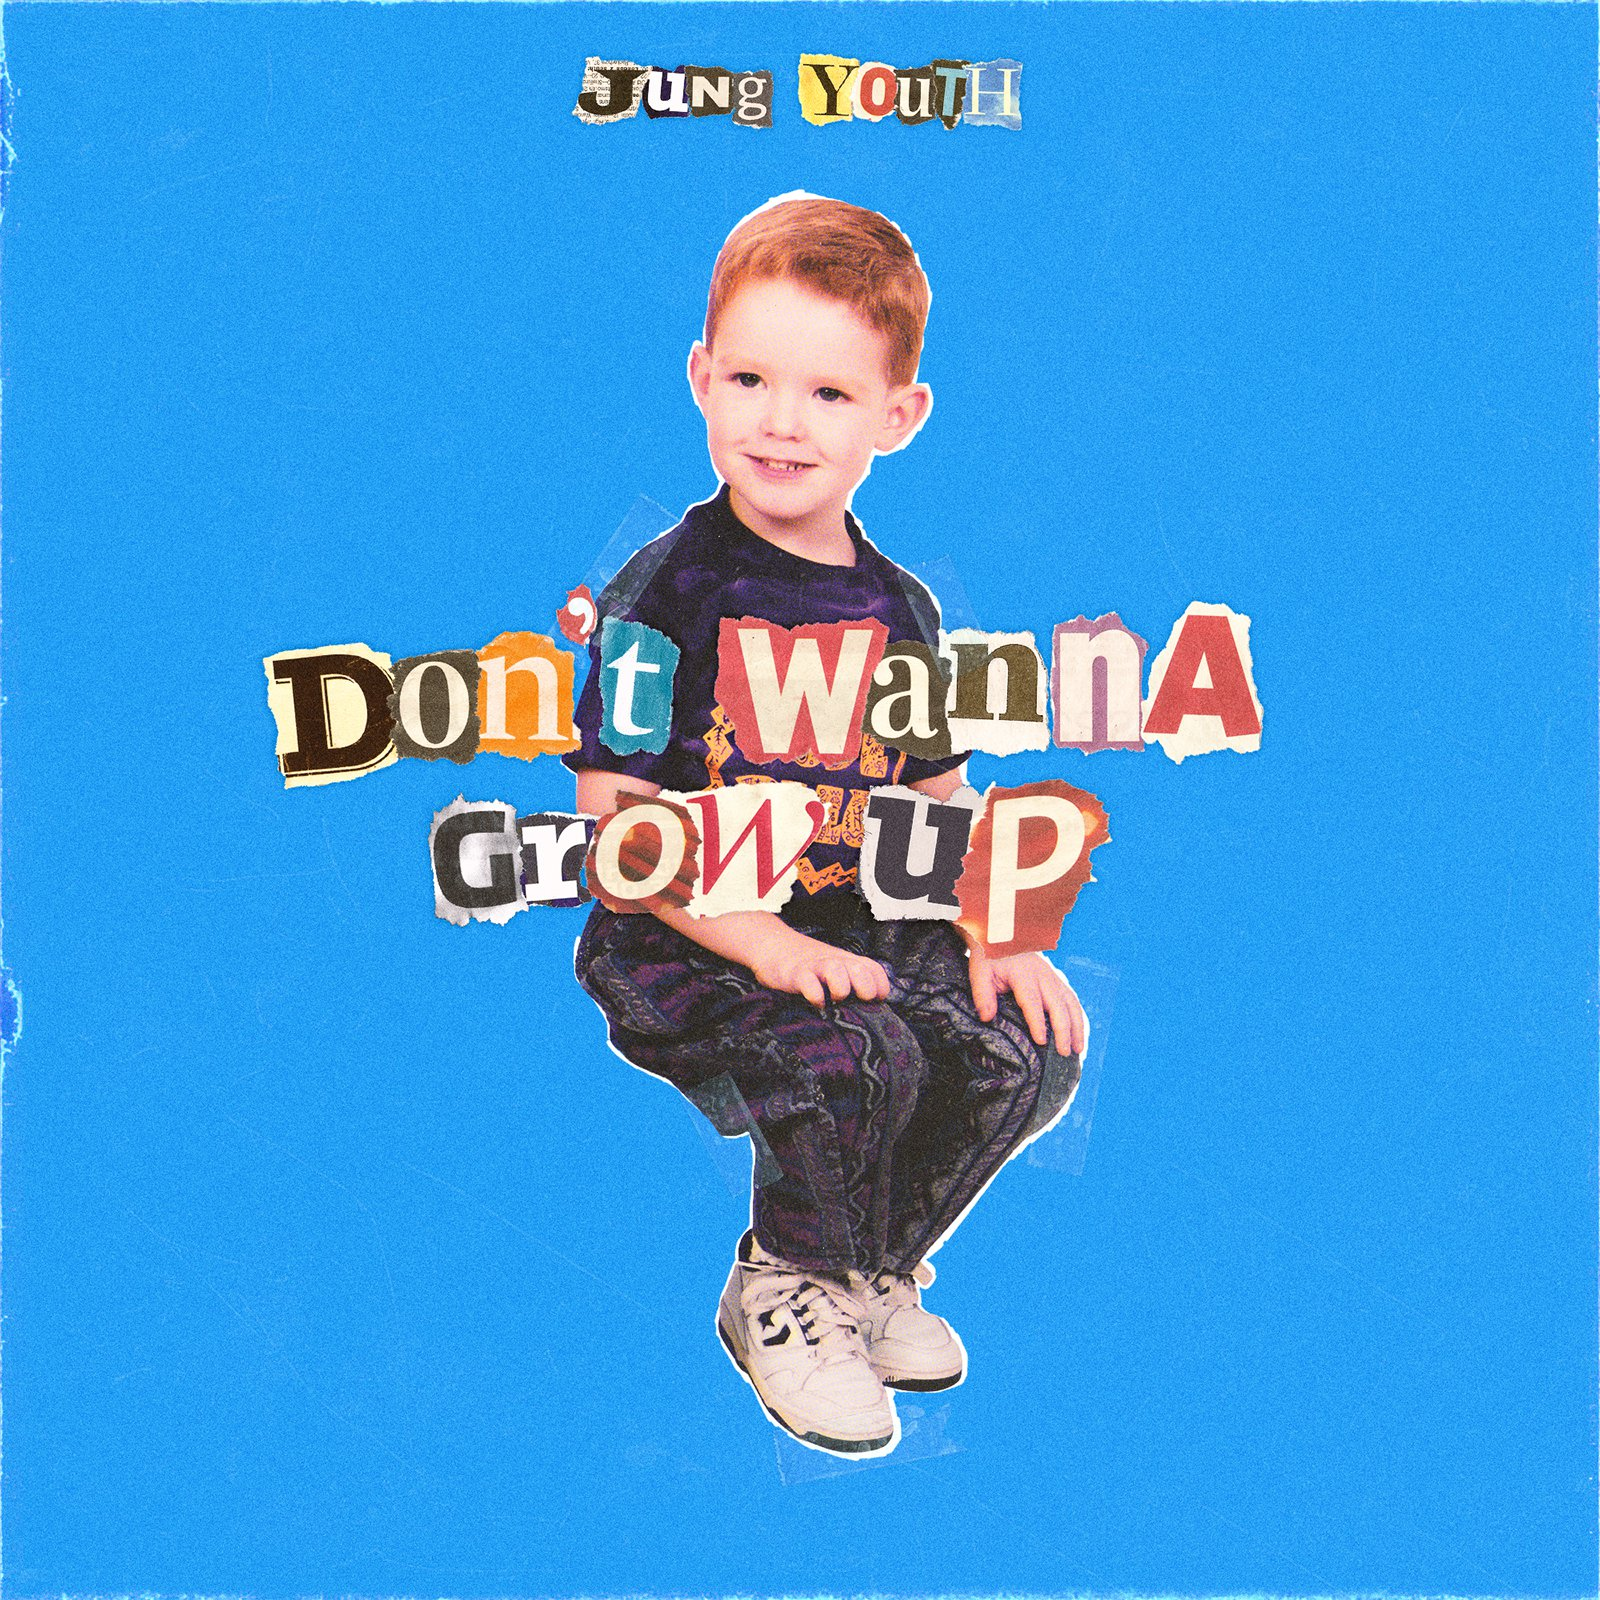 Jung Youth – Don't Wanna Grow Up